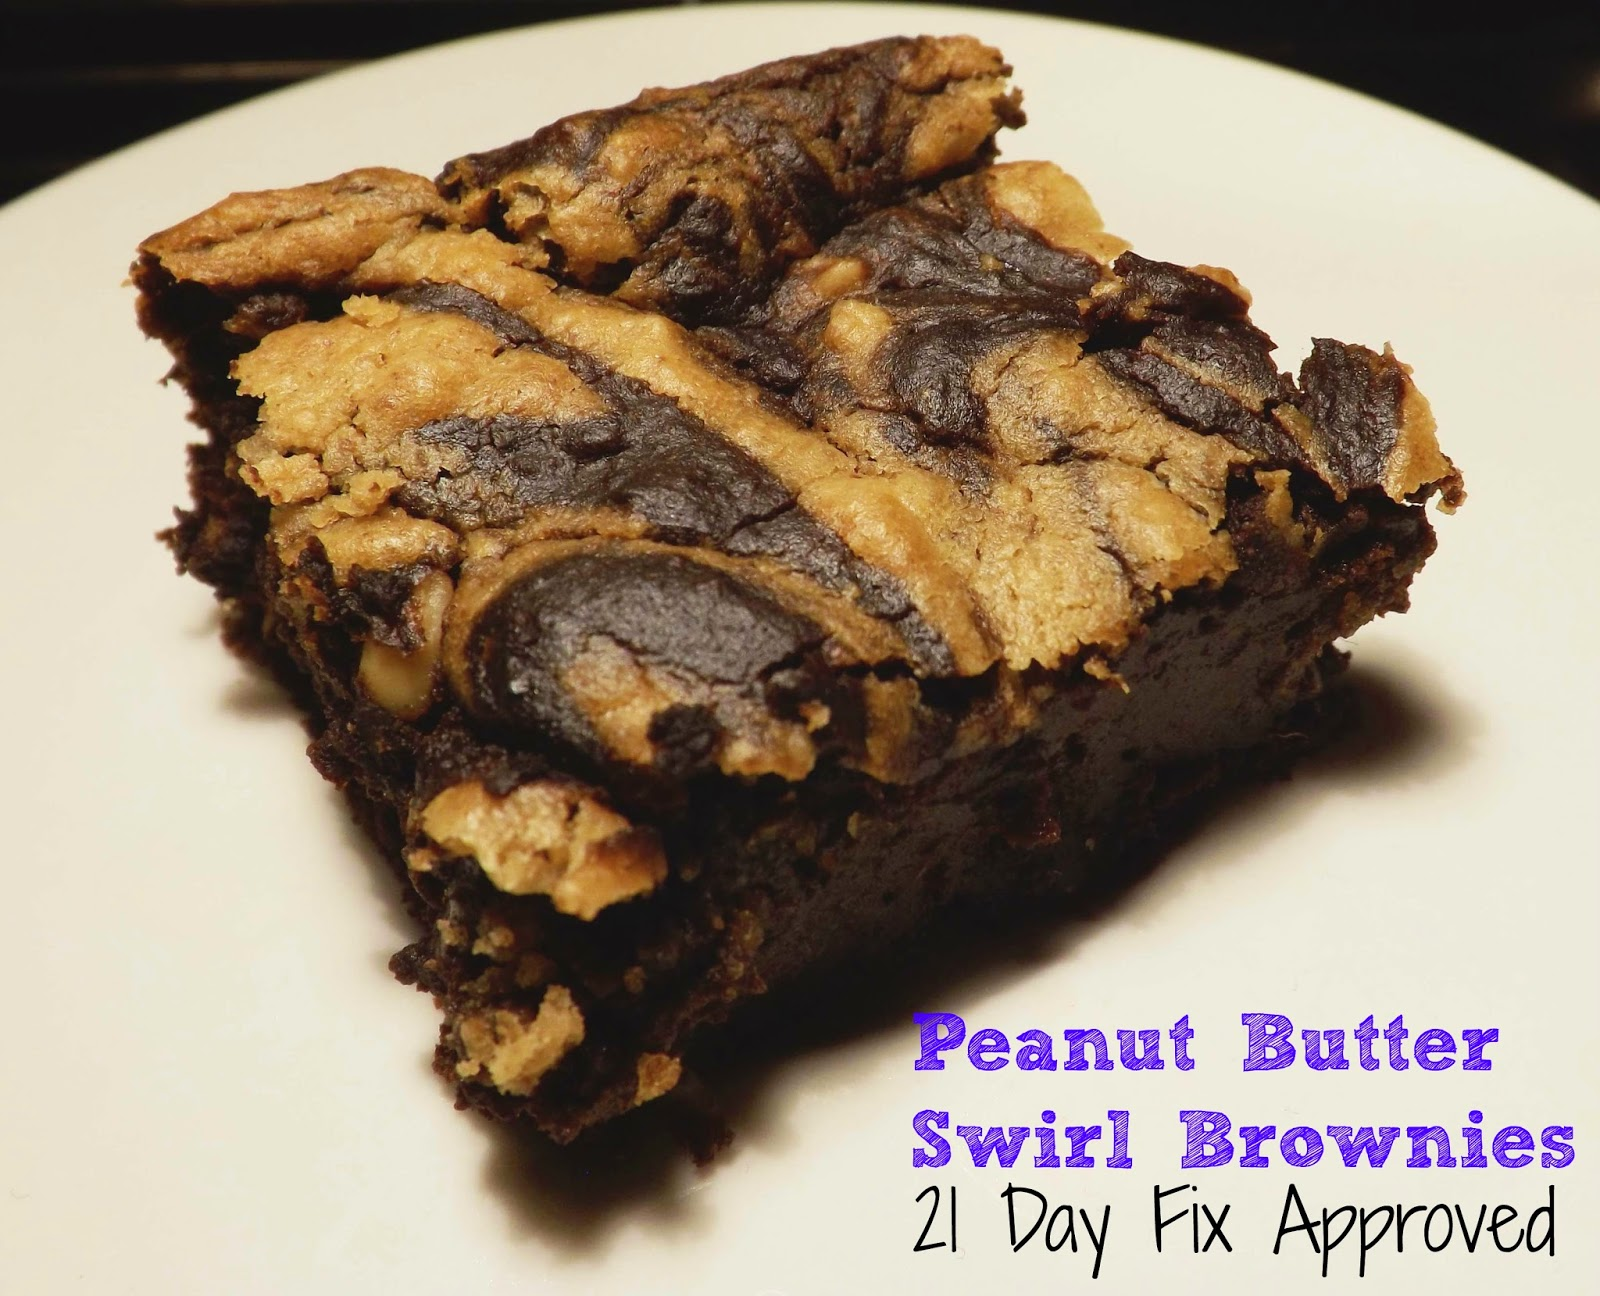 Peanut Butter And Chocolate Cheesecake Swirl Brownies ...